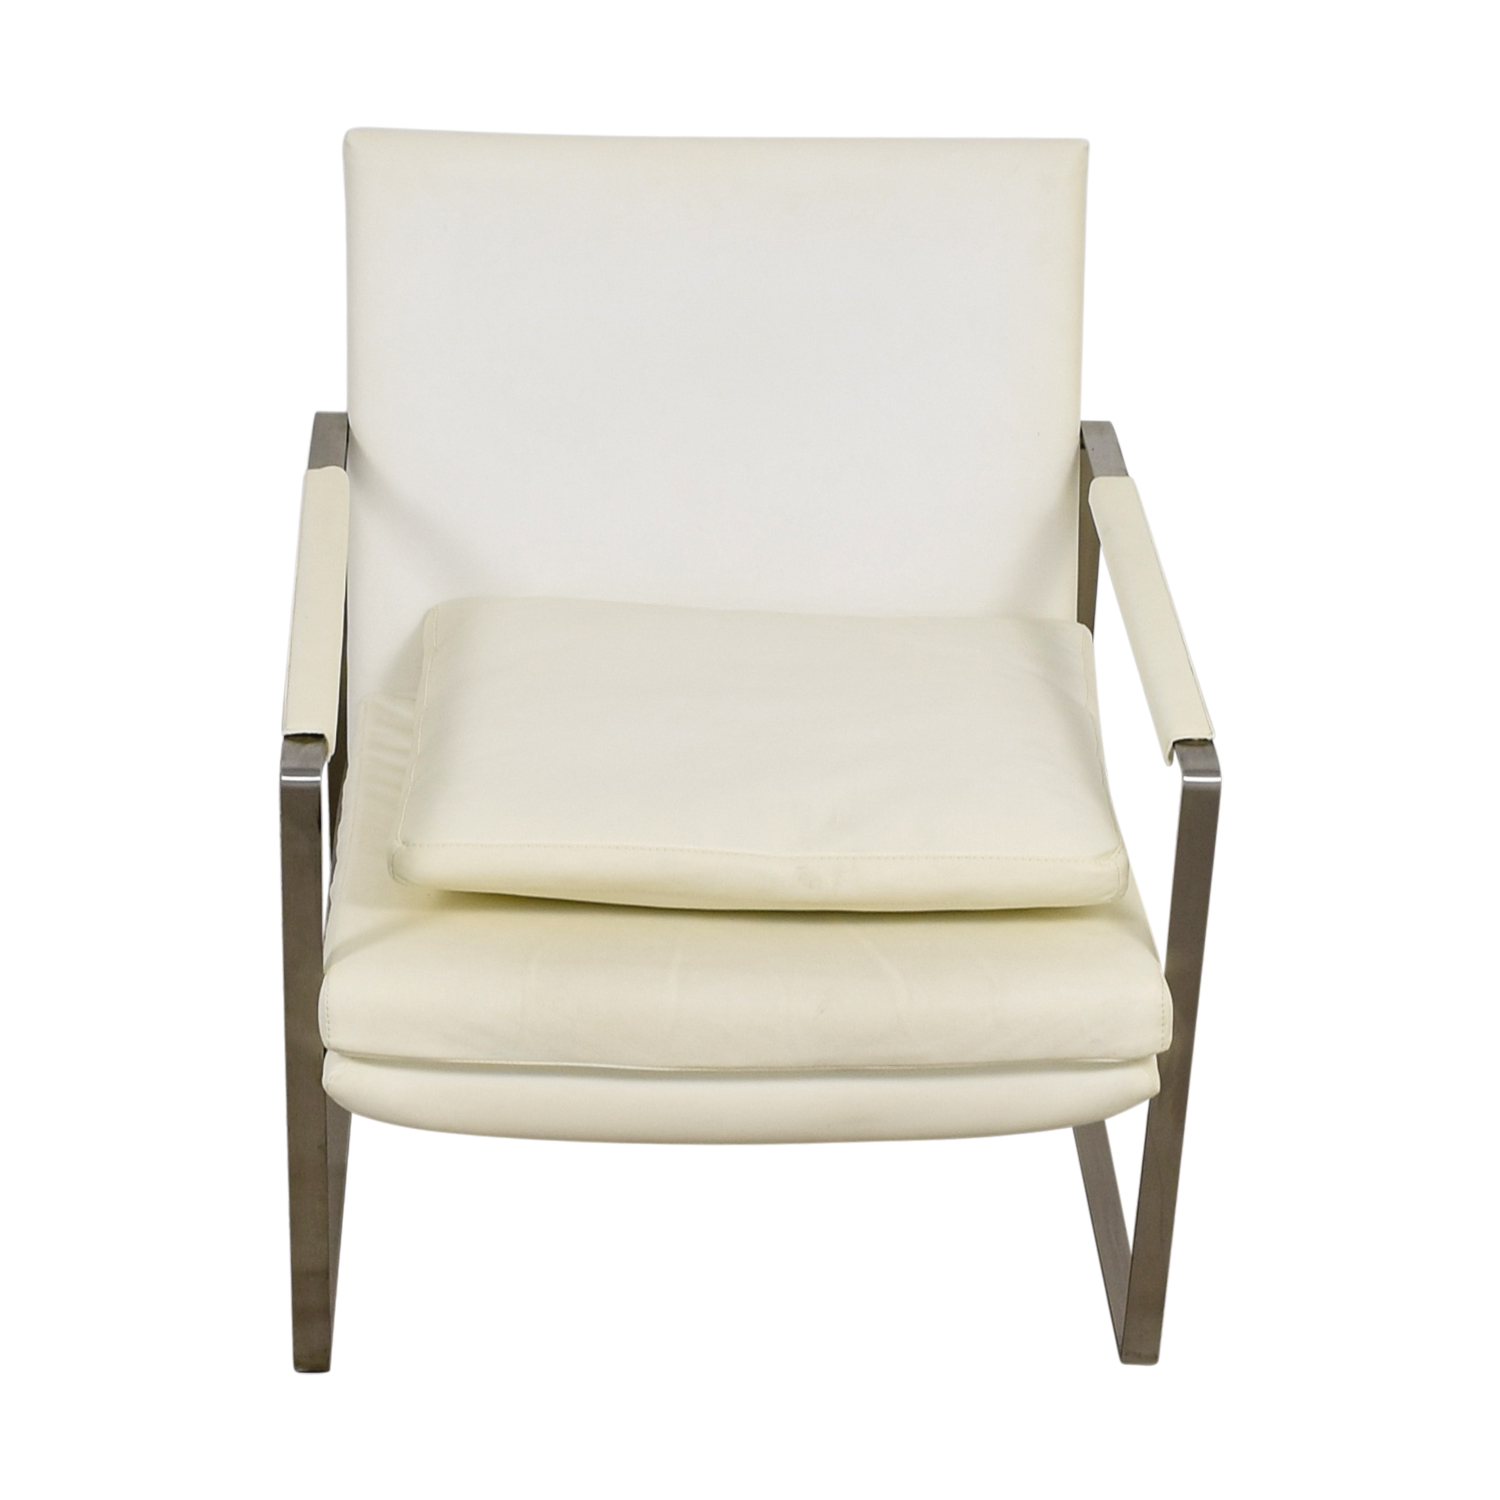 ... Zara Soho Concept Zara Soho Concept White And Chrome Accent Chair With  Pillow Dimensions ...